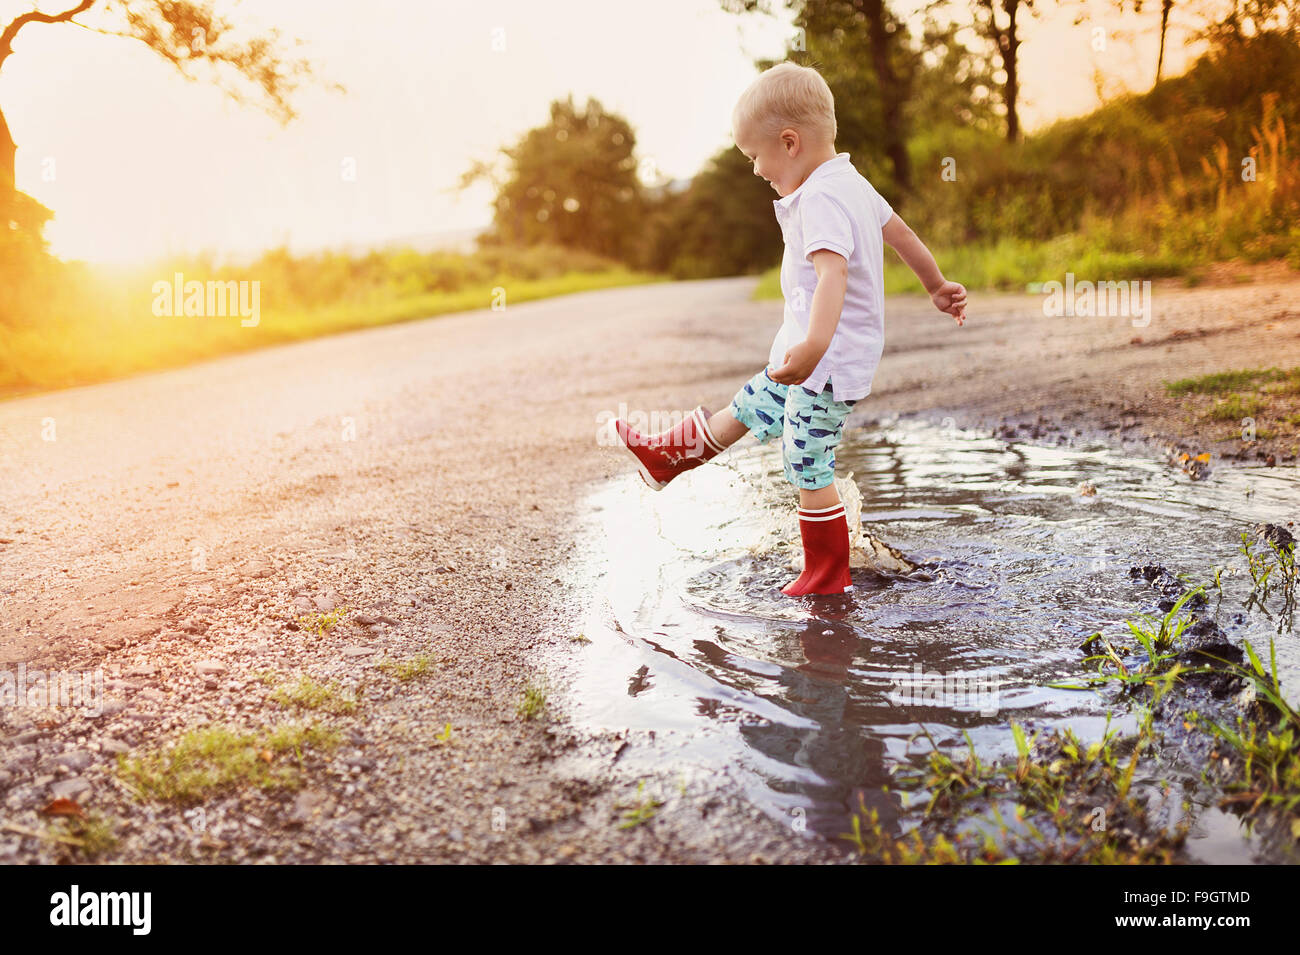 Little boy playing outside in a puddle Stock Photo